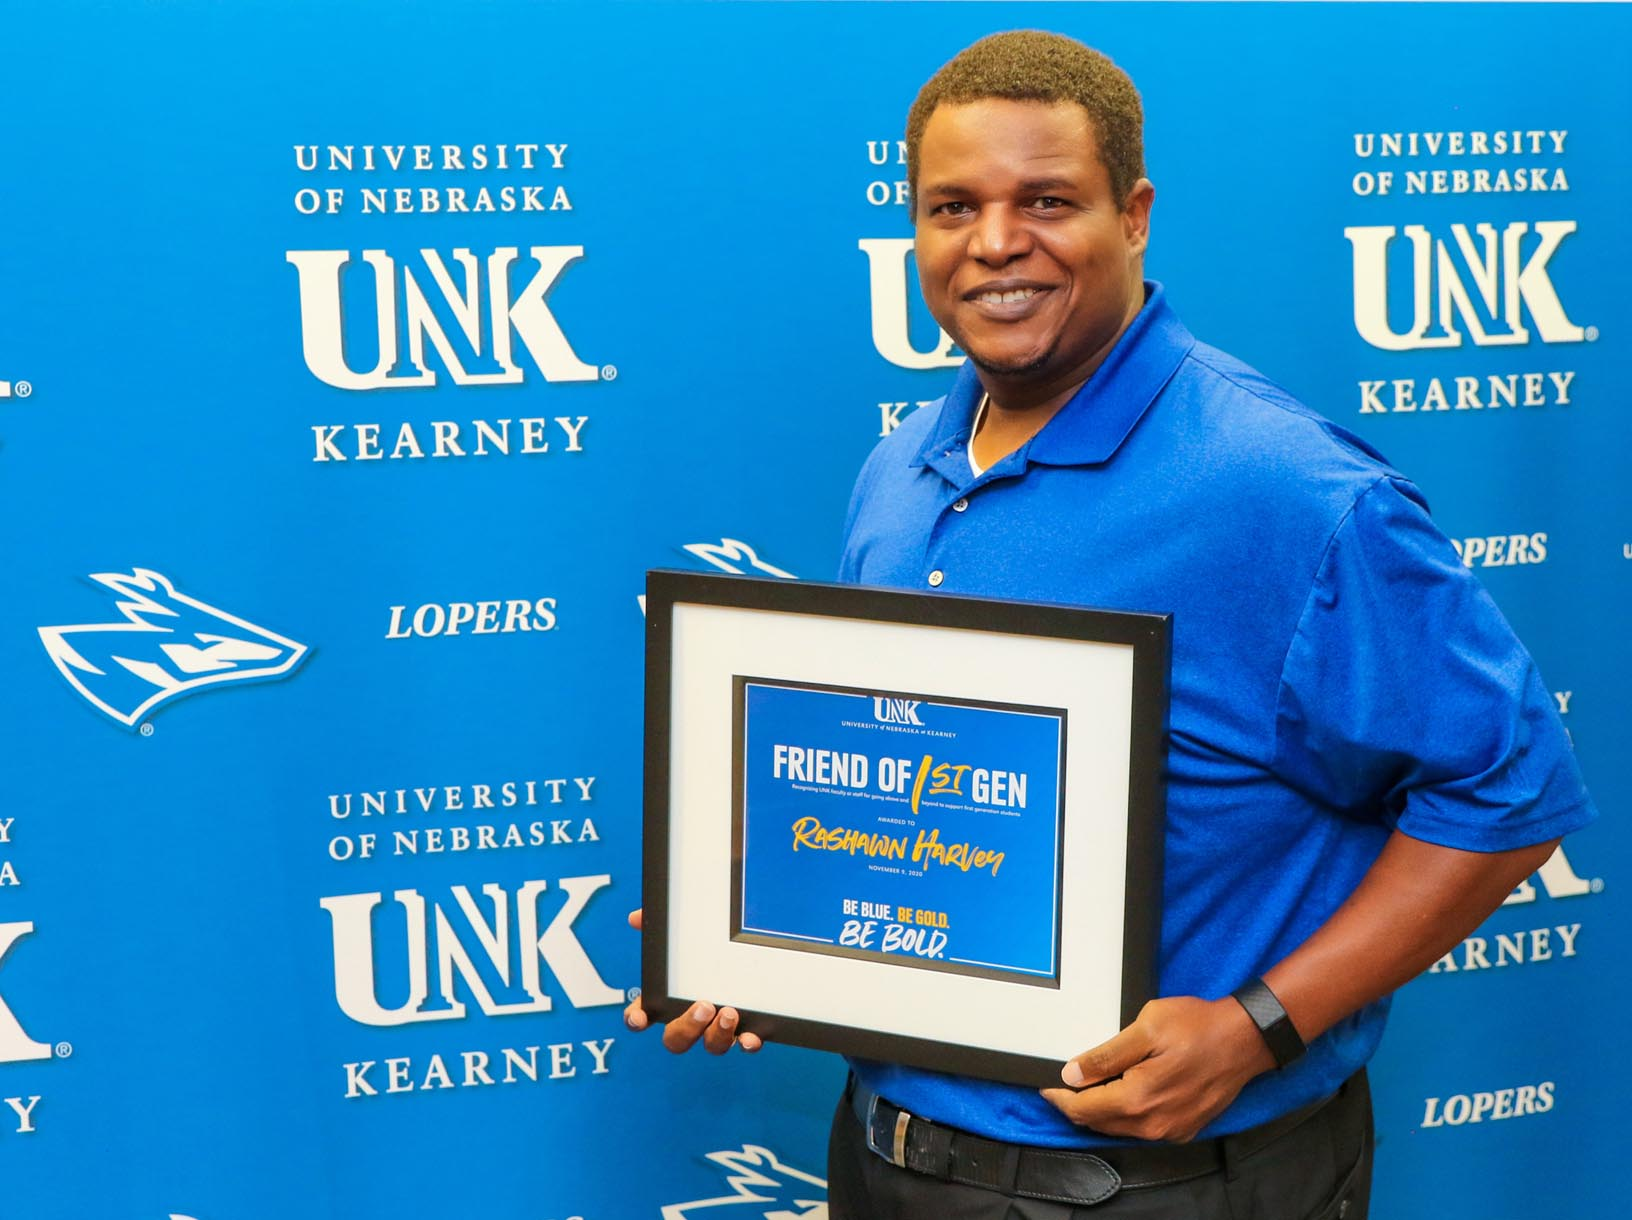 Rashawn Harvey, assistant director of TRIO Student Support Services, received UNK's Friend of First Gen Award, which recognizes a faculty or staff member who goes above and beyond to support first-generation students.